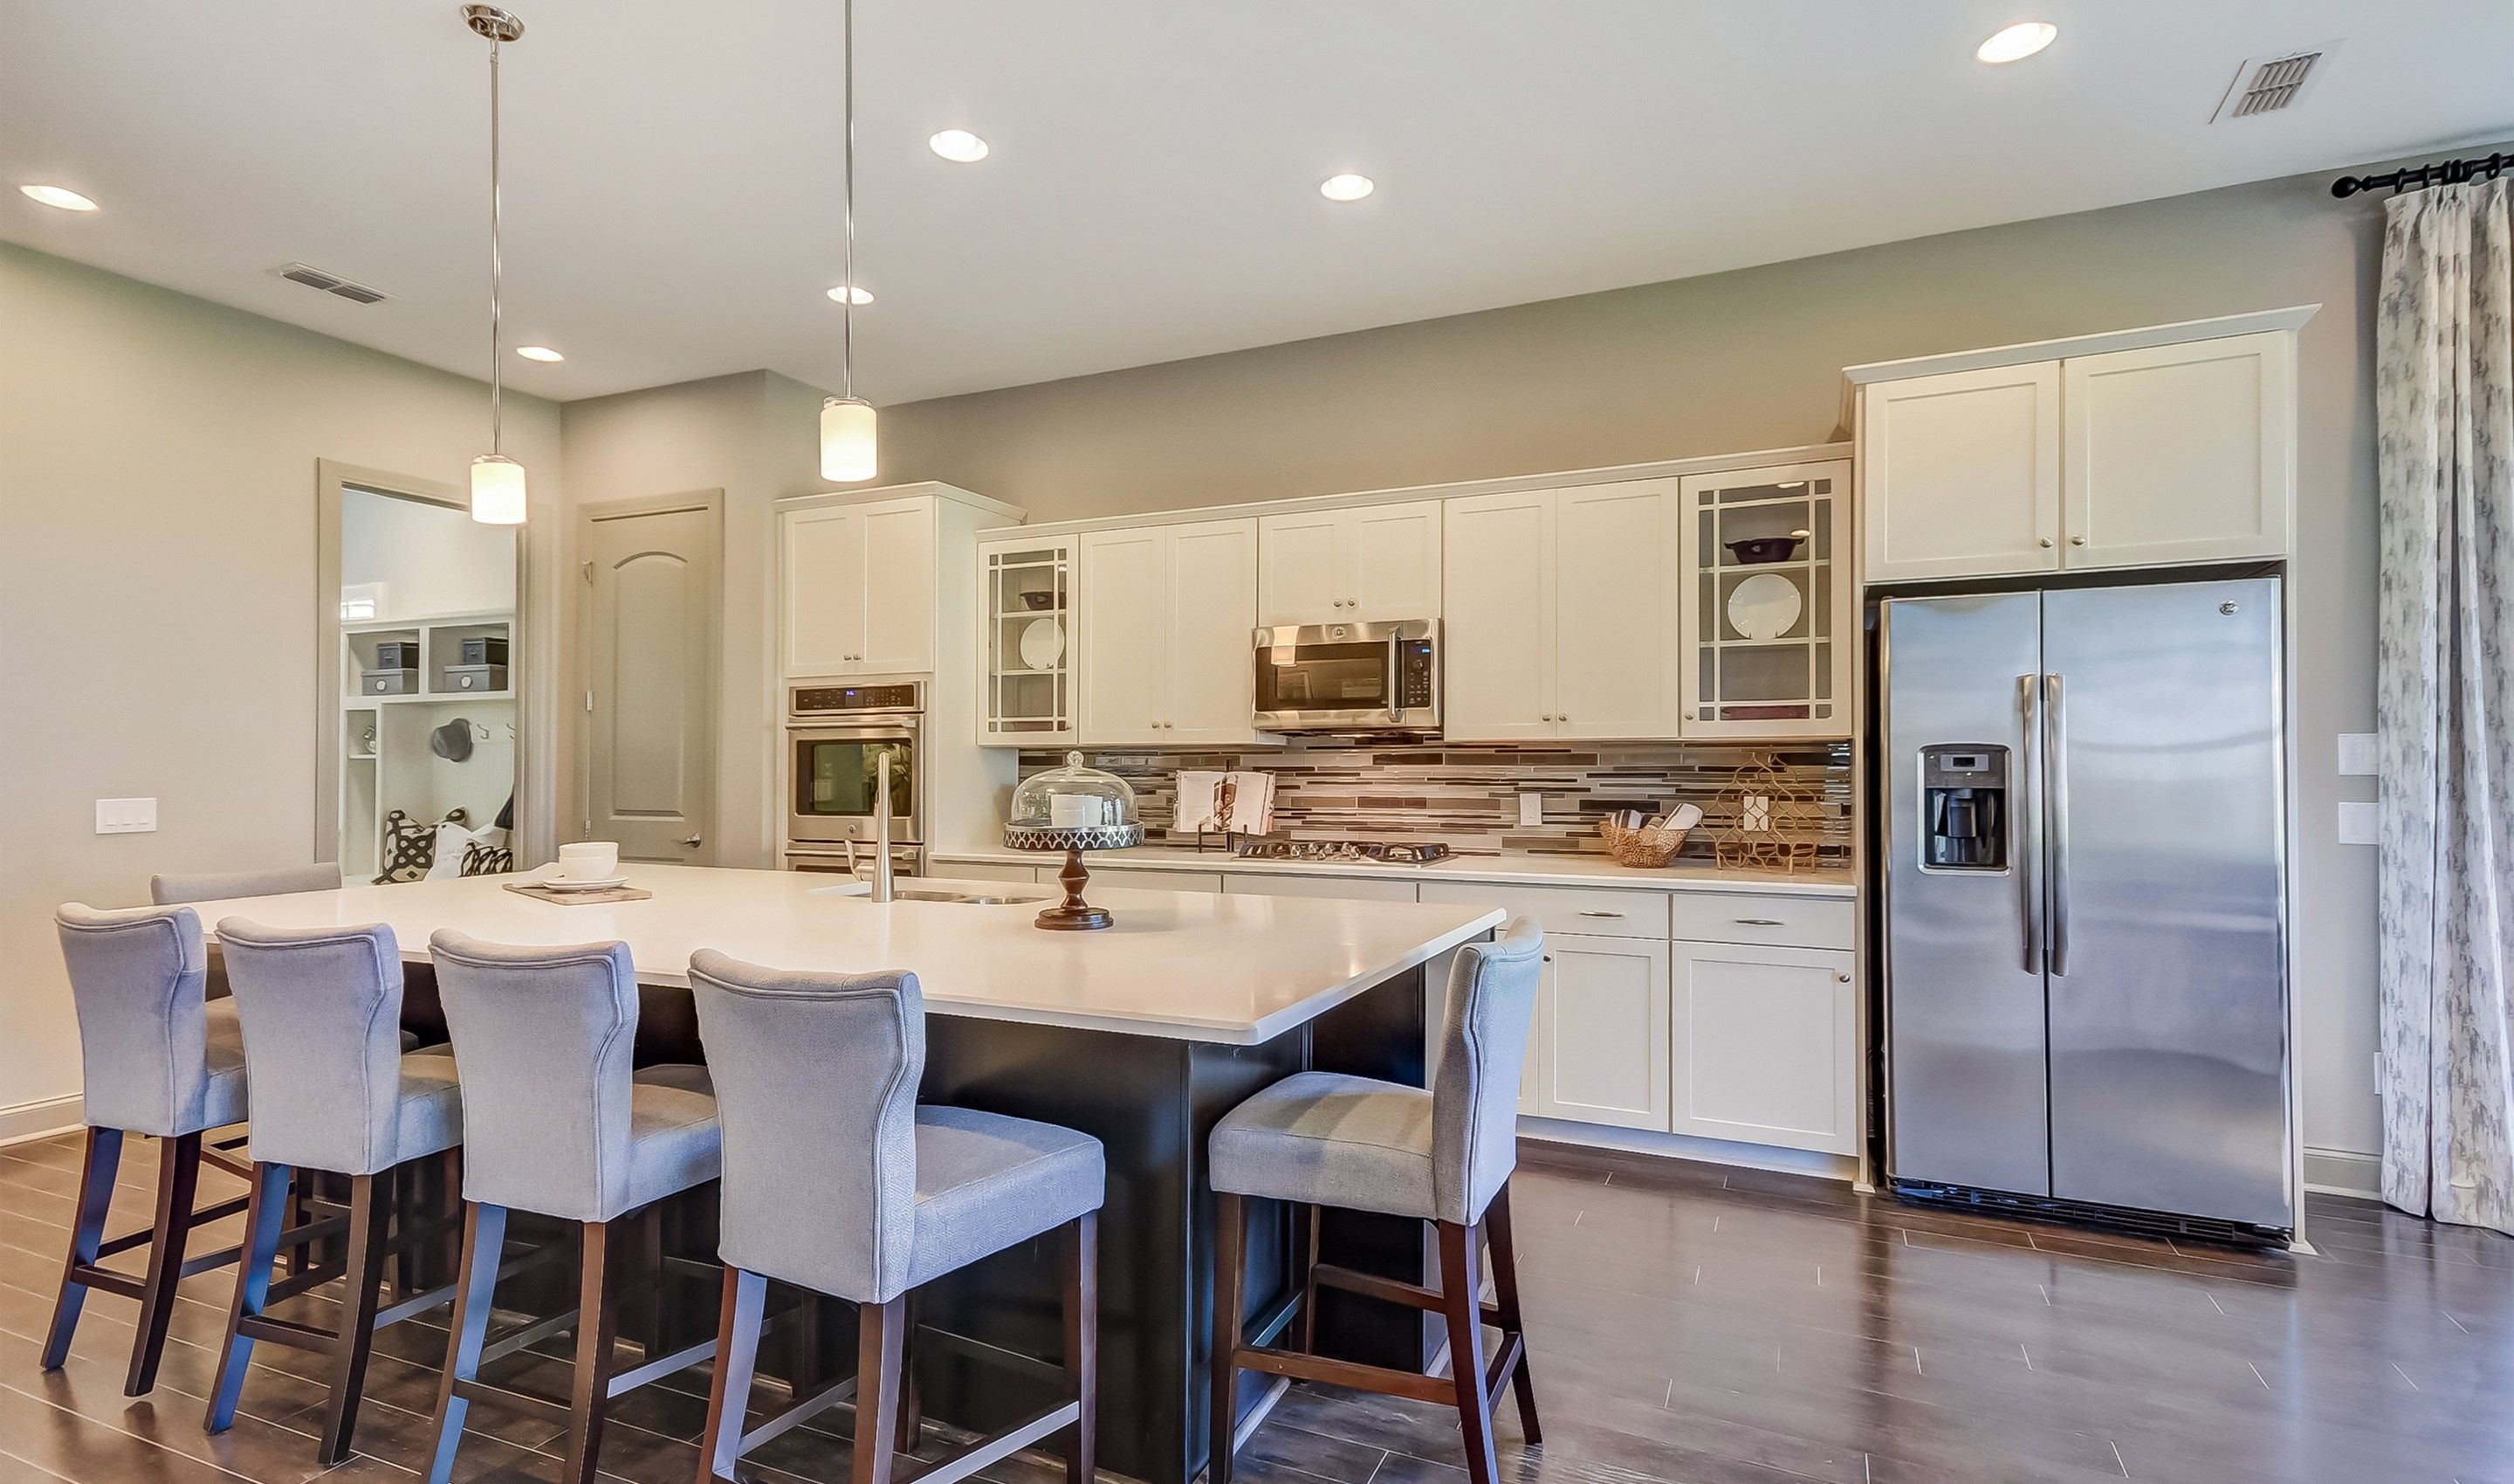 Kitchen-in-Ibiza - Foxpath Collection-at-Hampton Lake-in-Bluffton